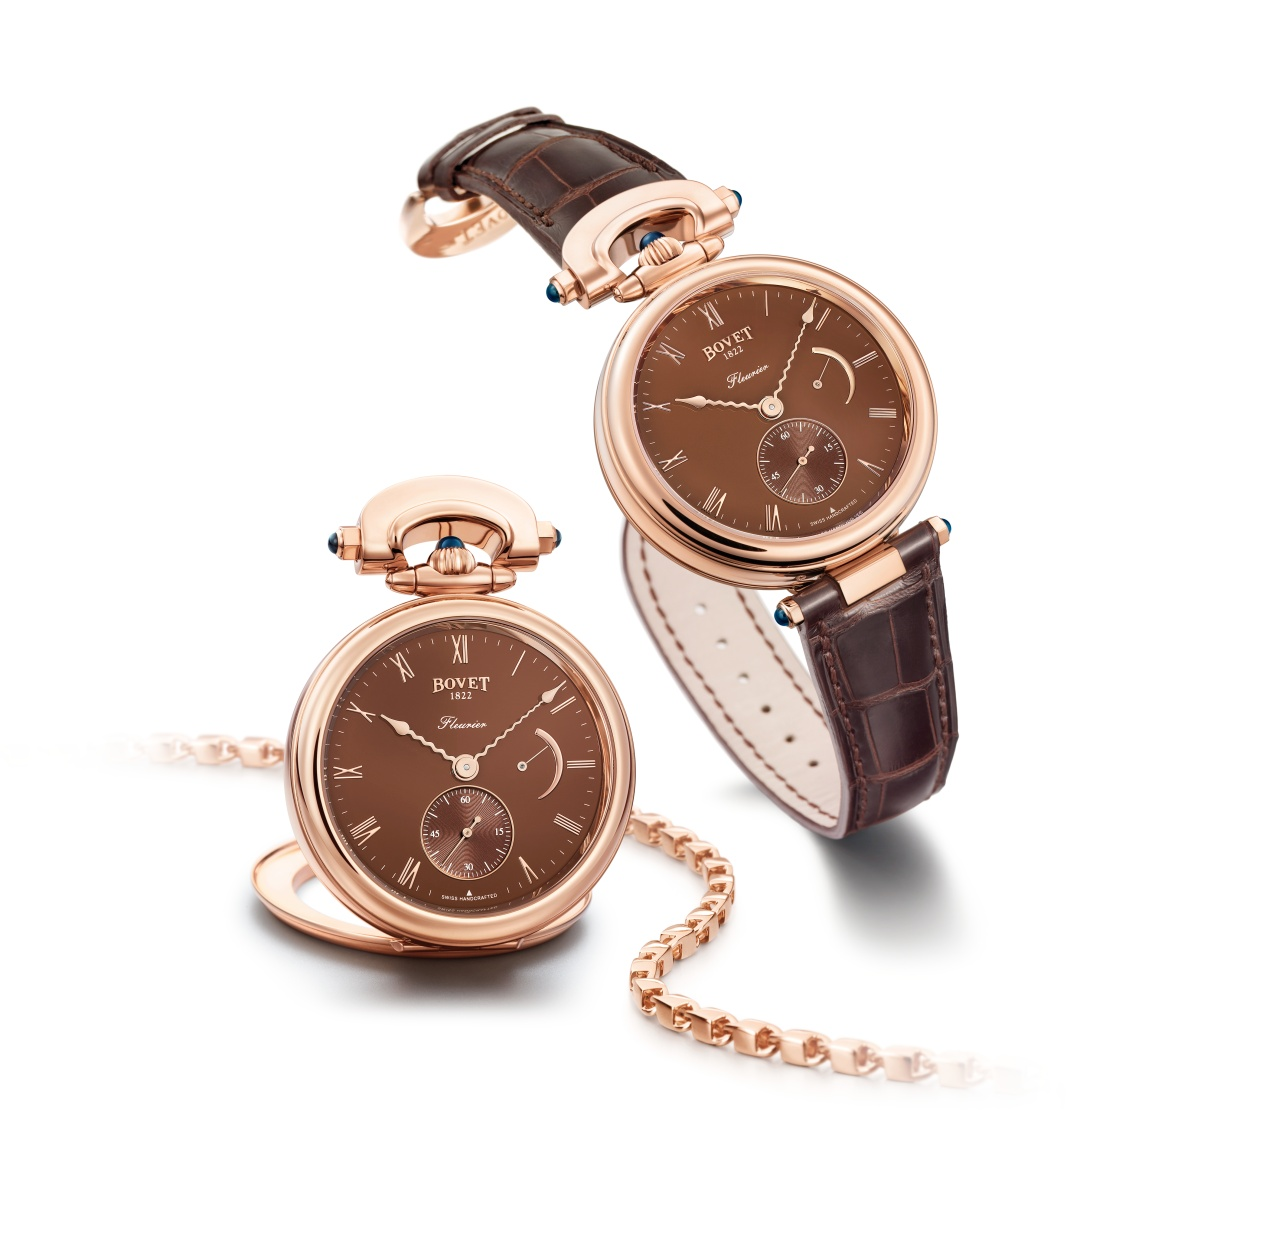 Bovet Watch   Amadeo Fleurier   Ref. Nr.  AF43039    Call 312-944-3100  | For Availability